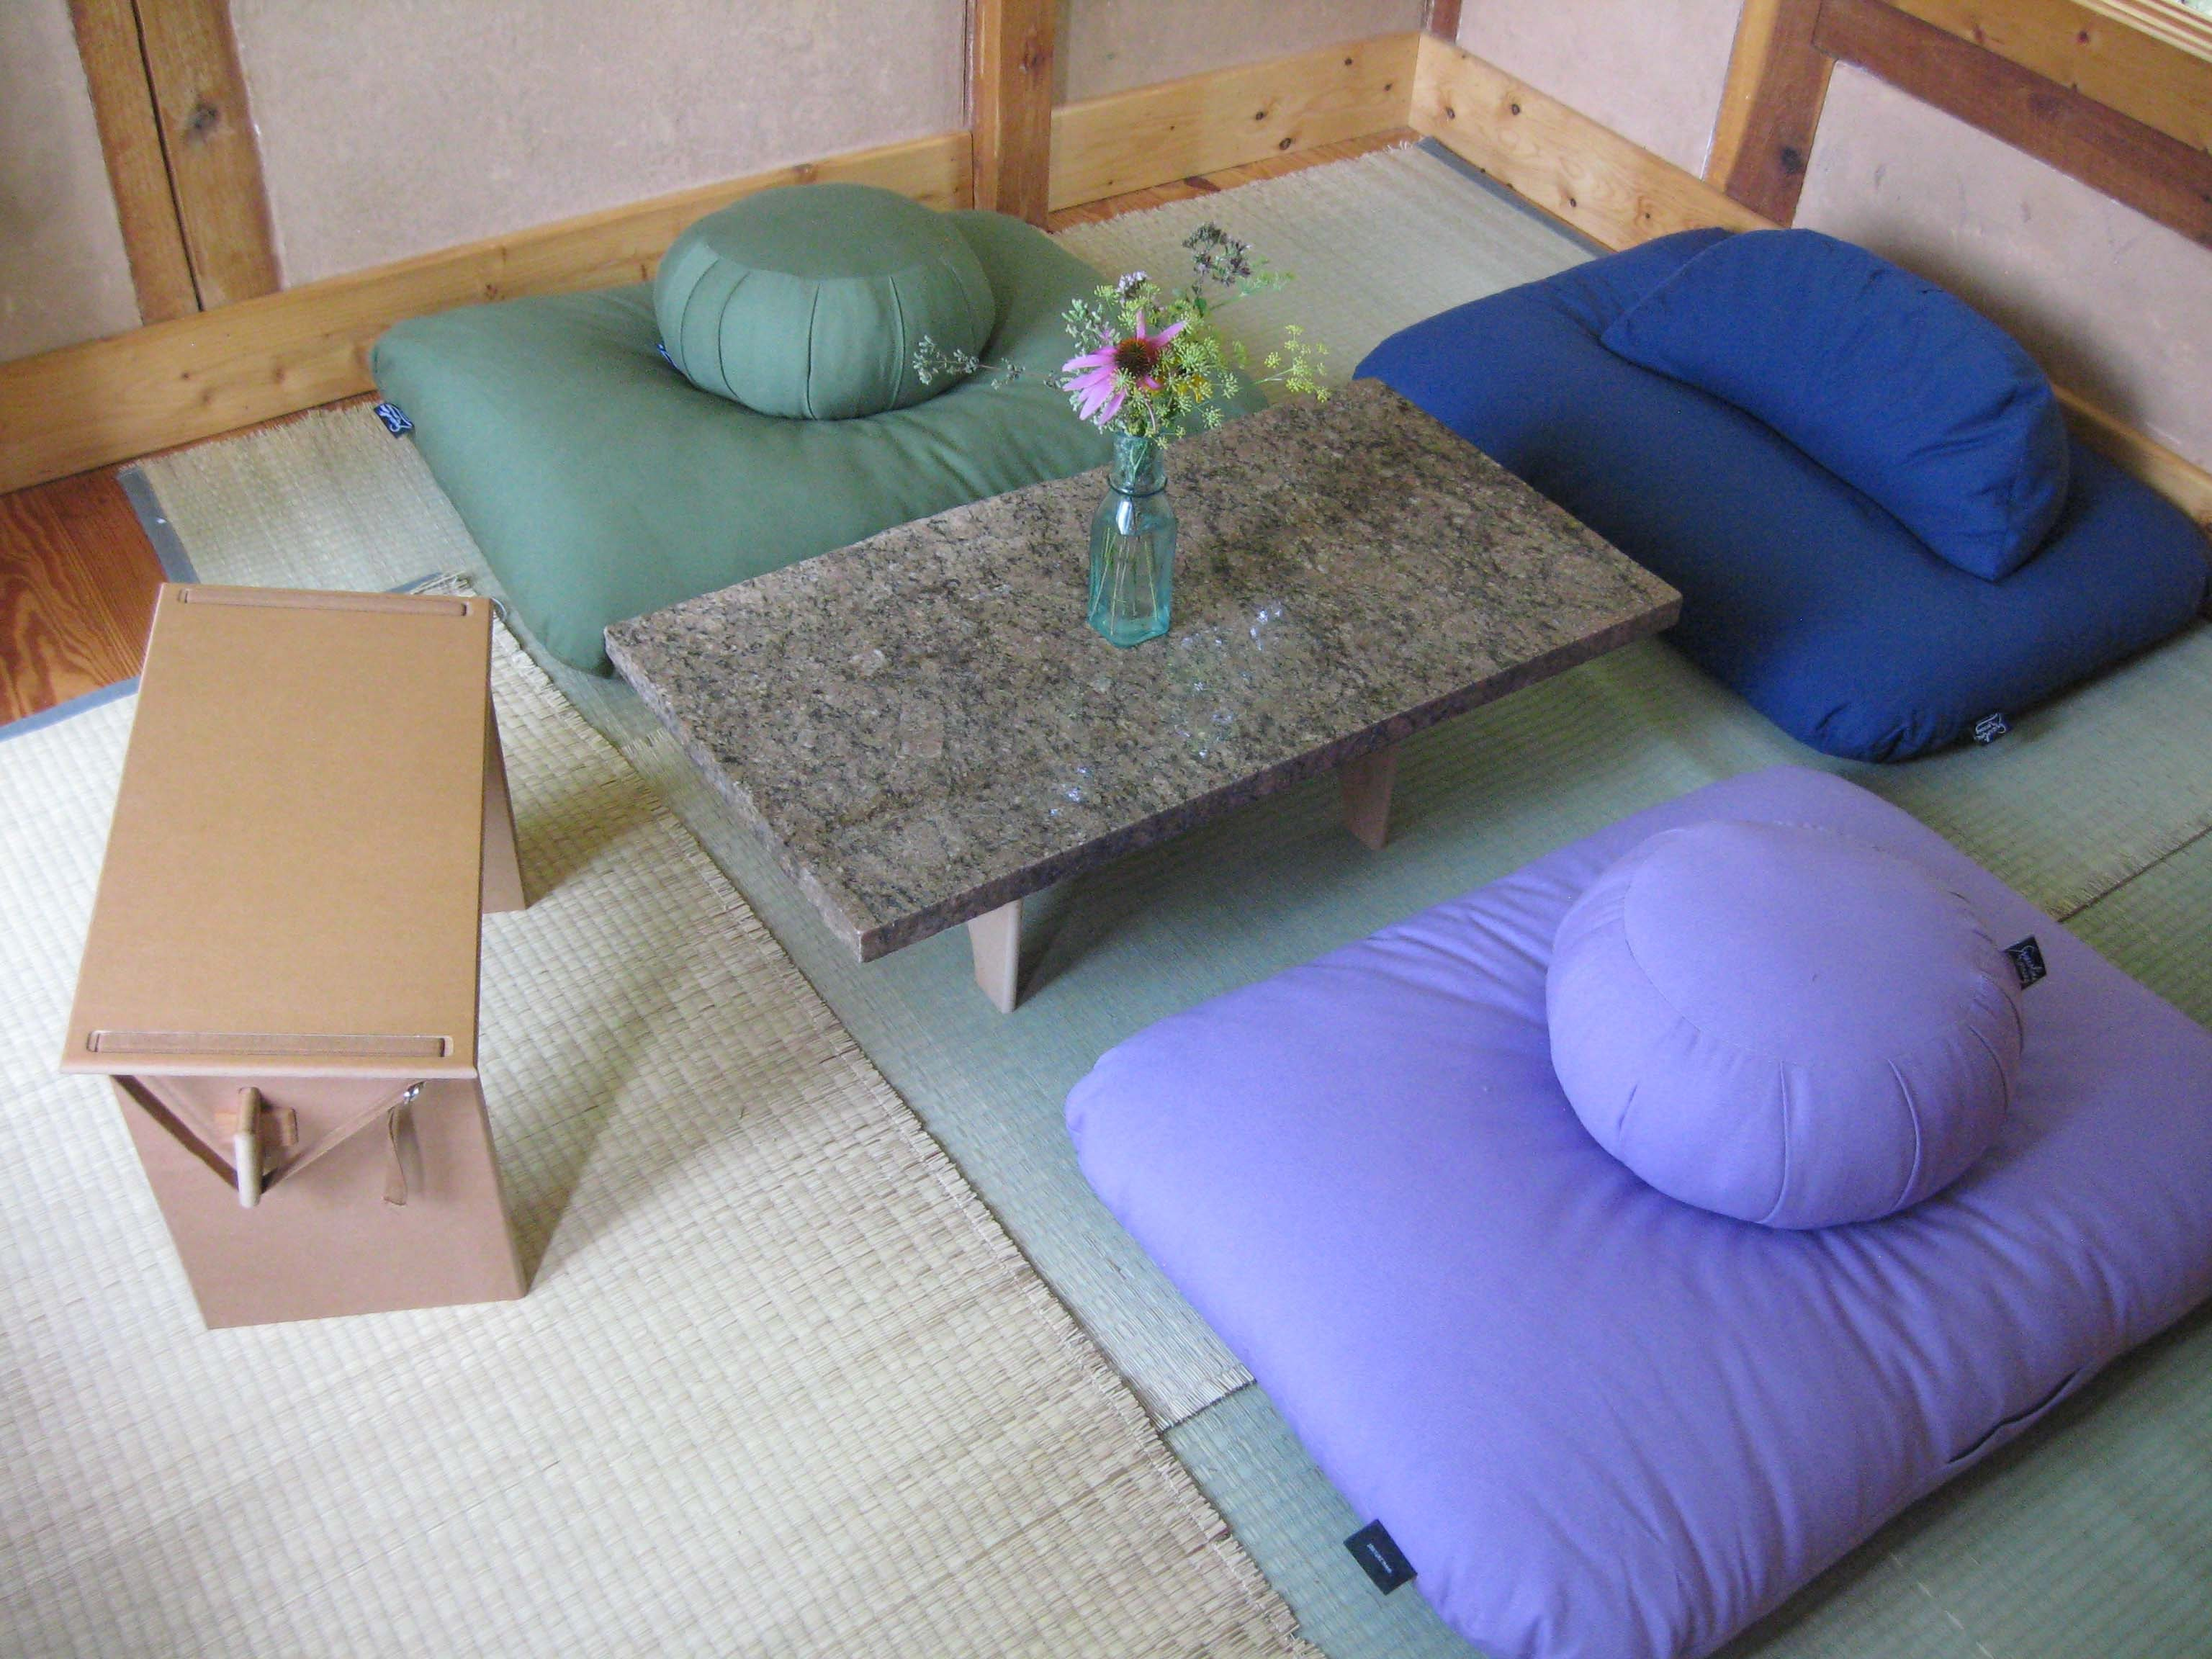 modern style floor seating blue and velvet pillows and seater around marble dining table - Dining Room Floor Mat